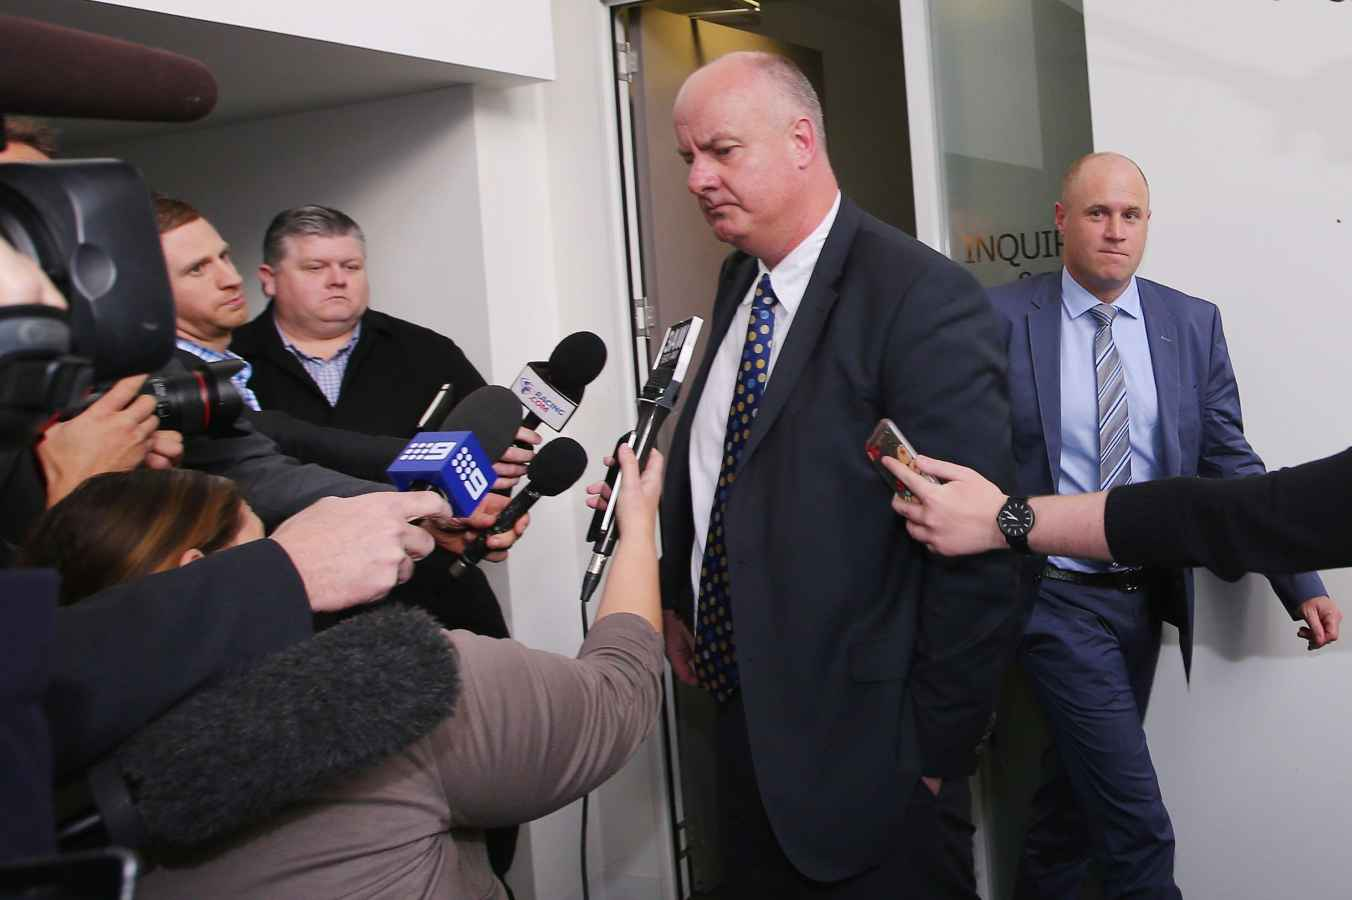 Three plead not guilty at cobalt hearing